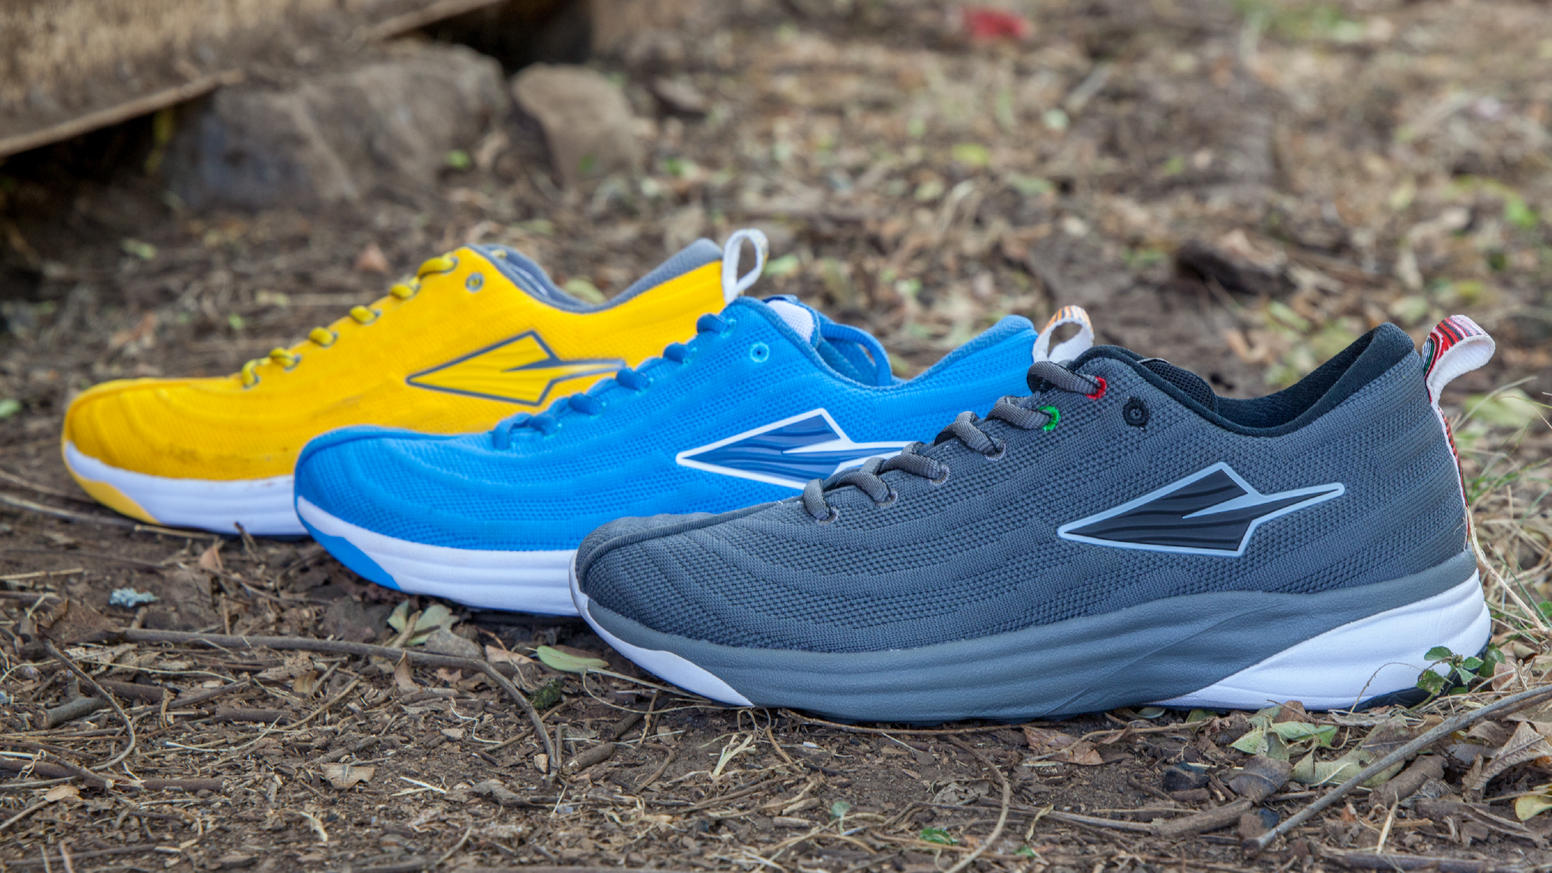 Lightest. Best Cushioning. Lowest Drop. Best Value. Made in Kenya.